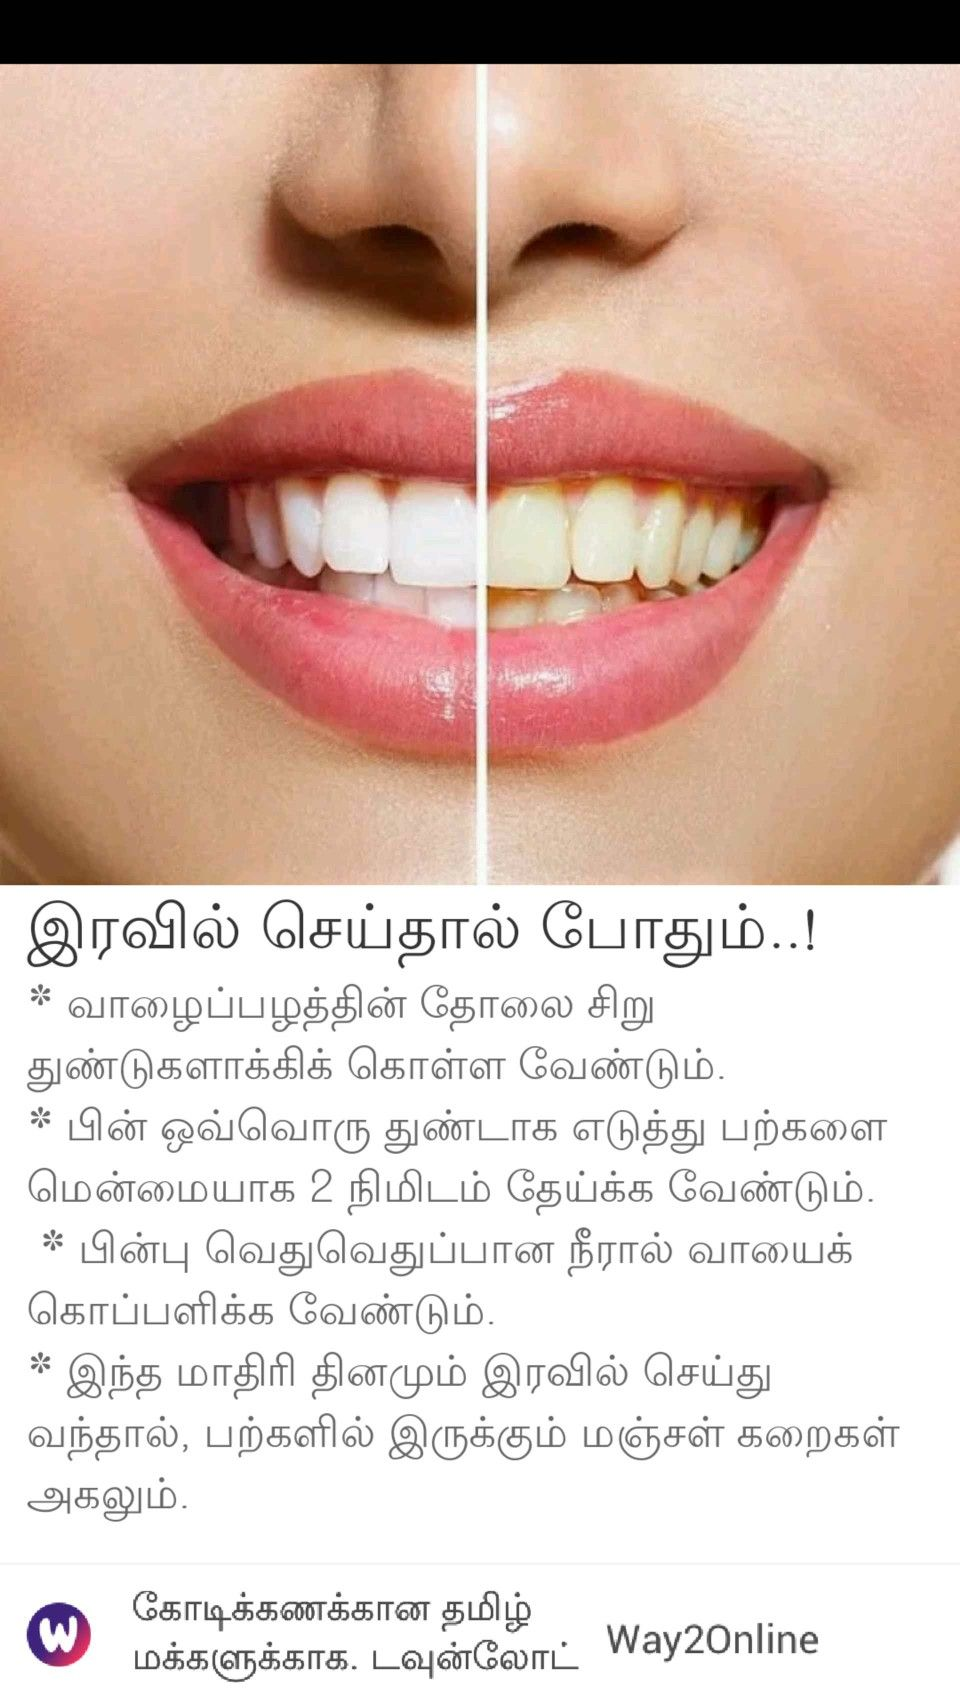 Pin By Velmurugan Velmurugan On Health Tips Health And Beauty